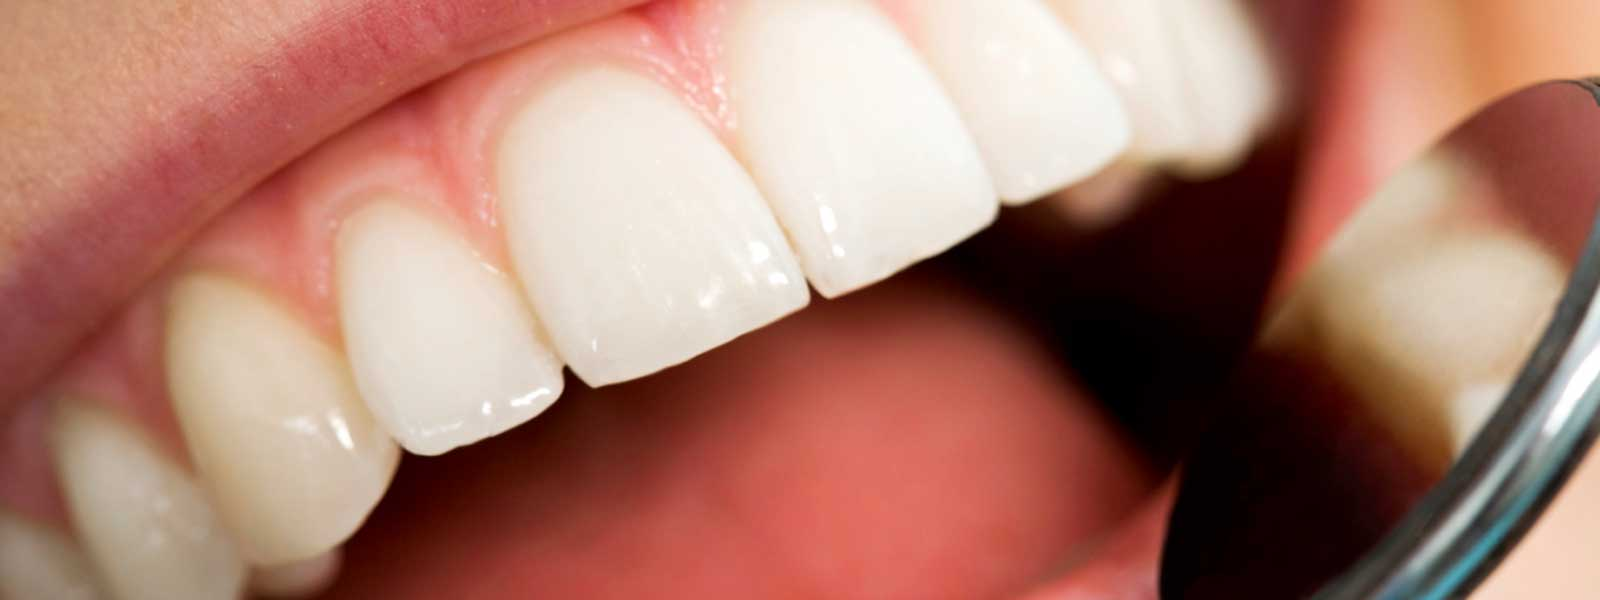 Cosmetic dentistry options improve appearance and enhance your smile